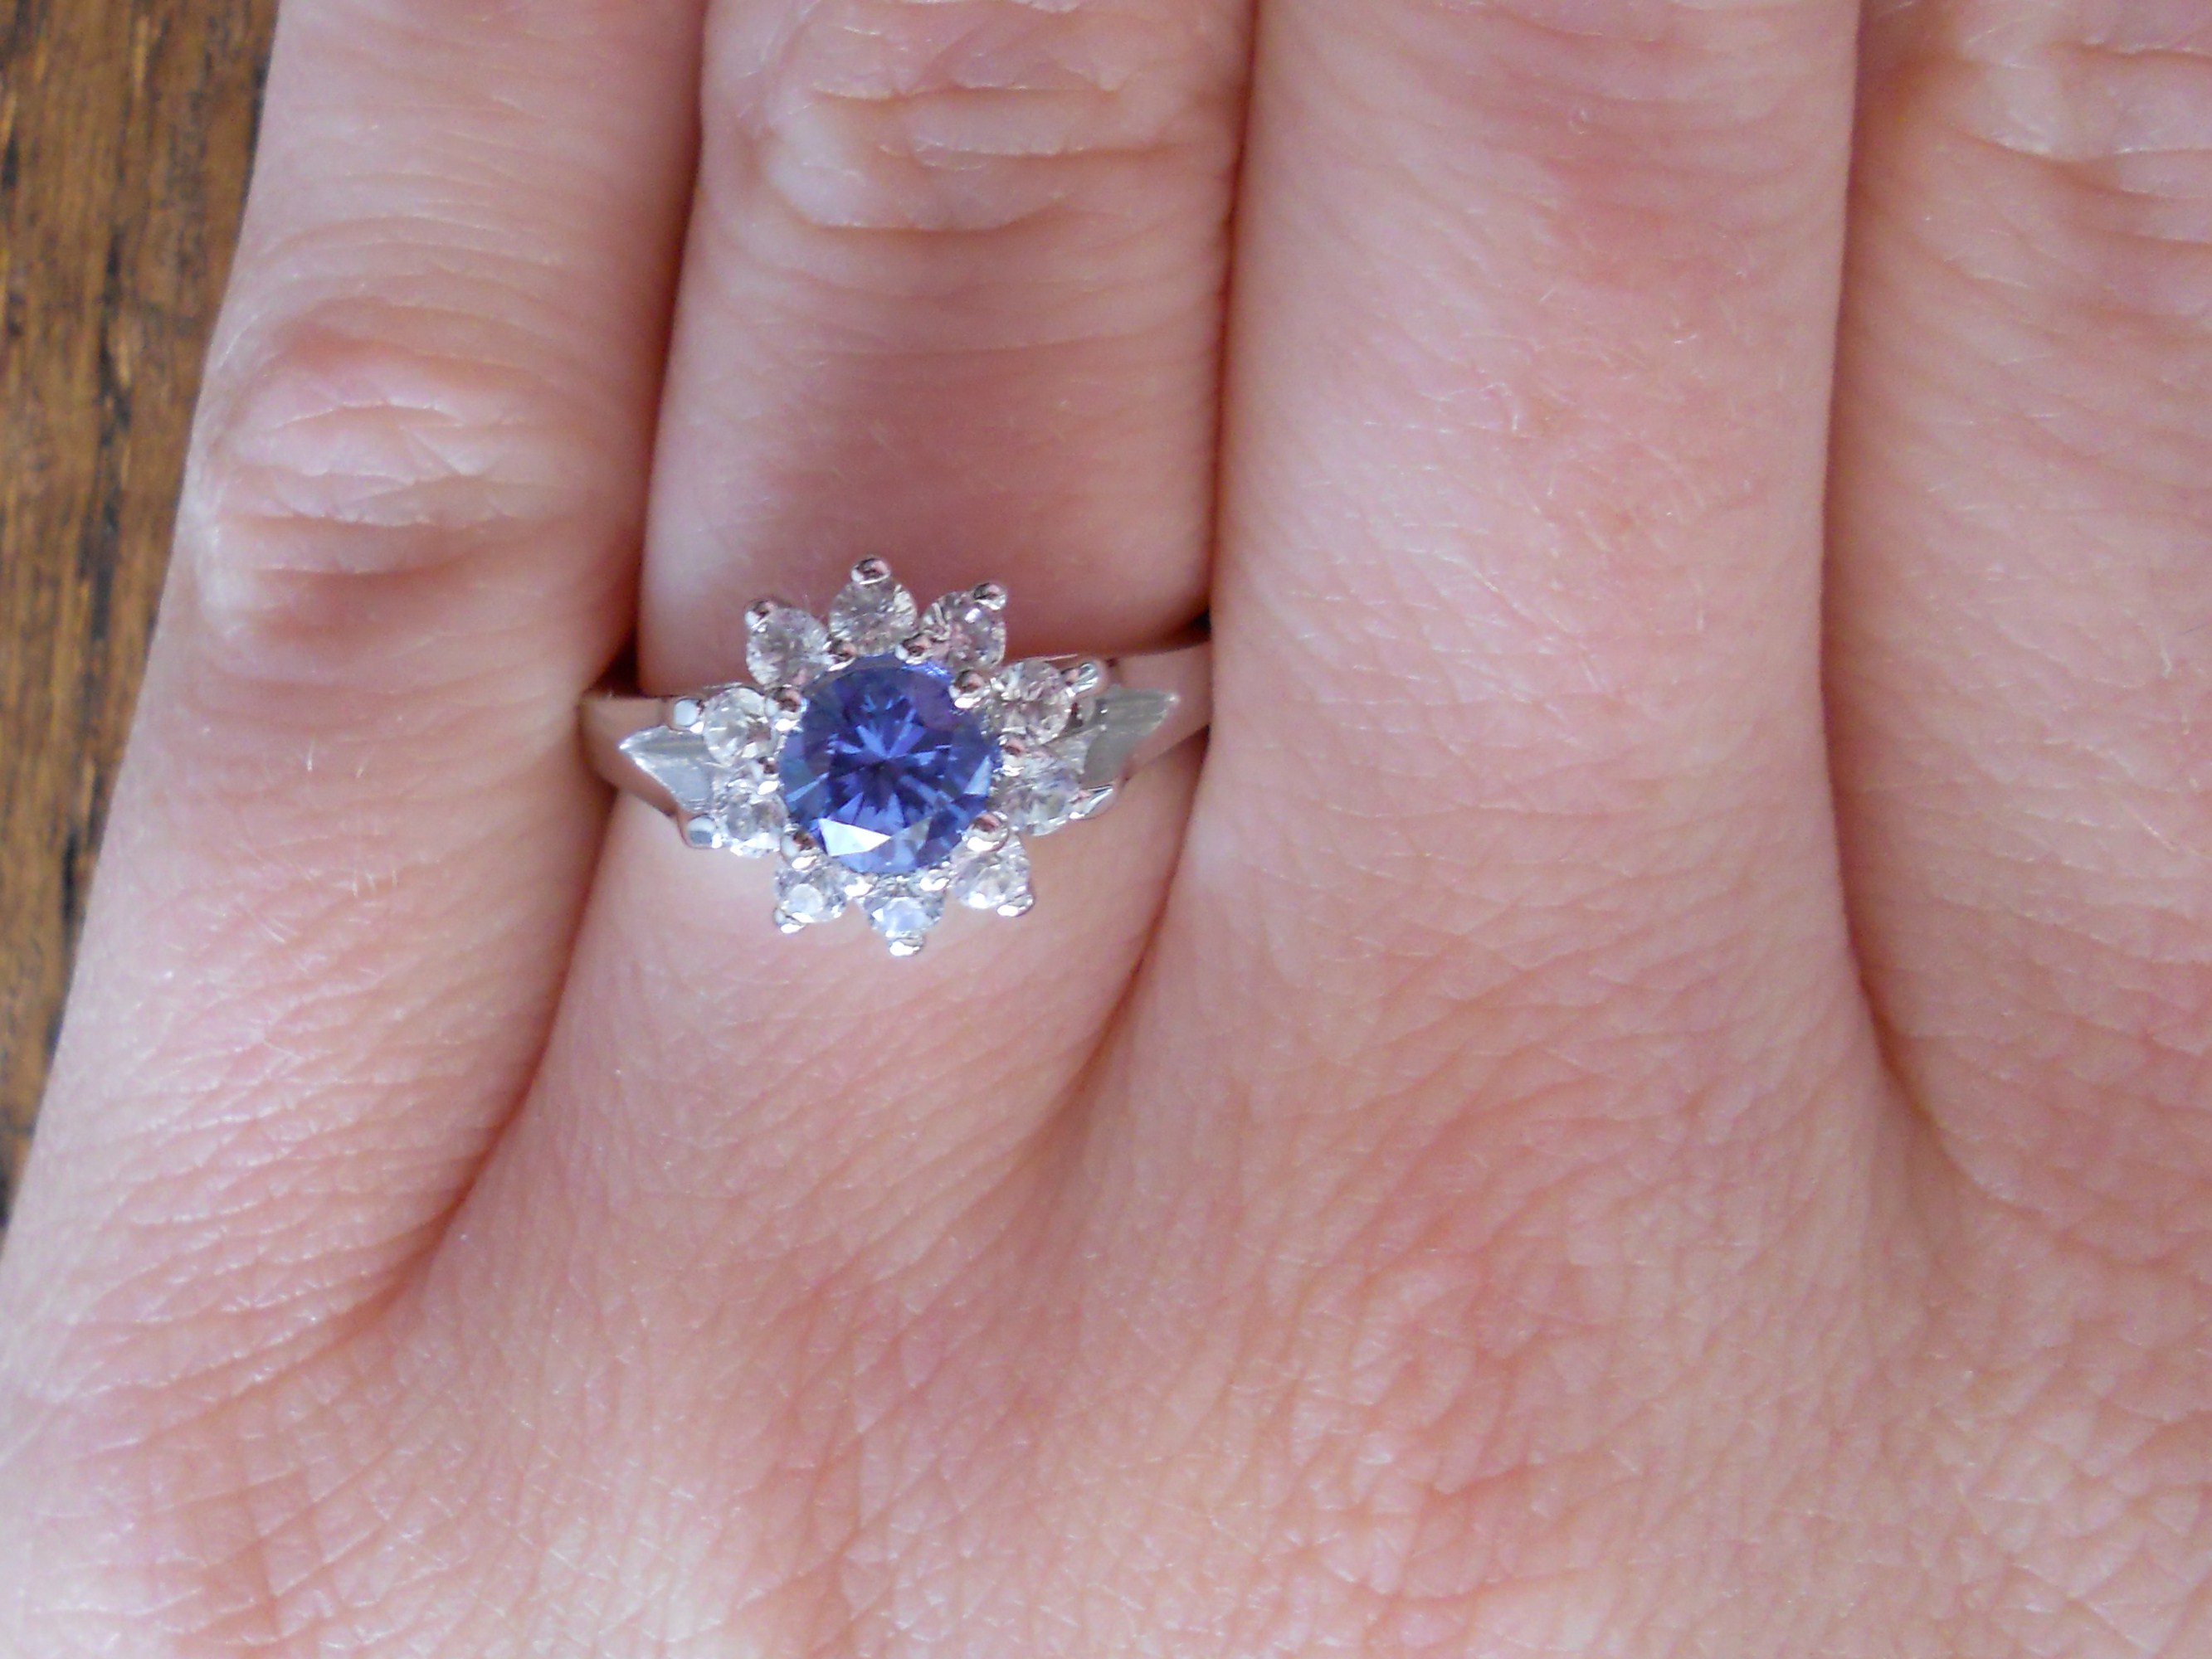 A Beautiful Blue Sapphire Engagement Ring - The Natural Sapphire ...